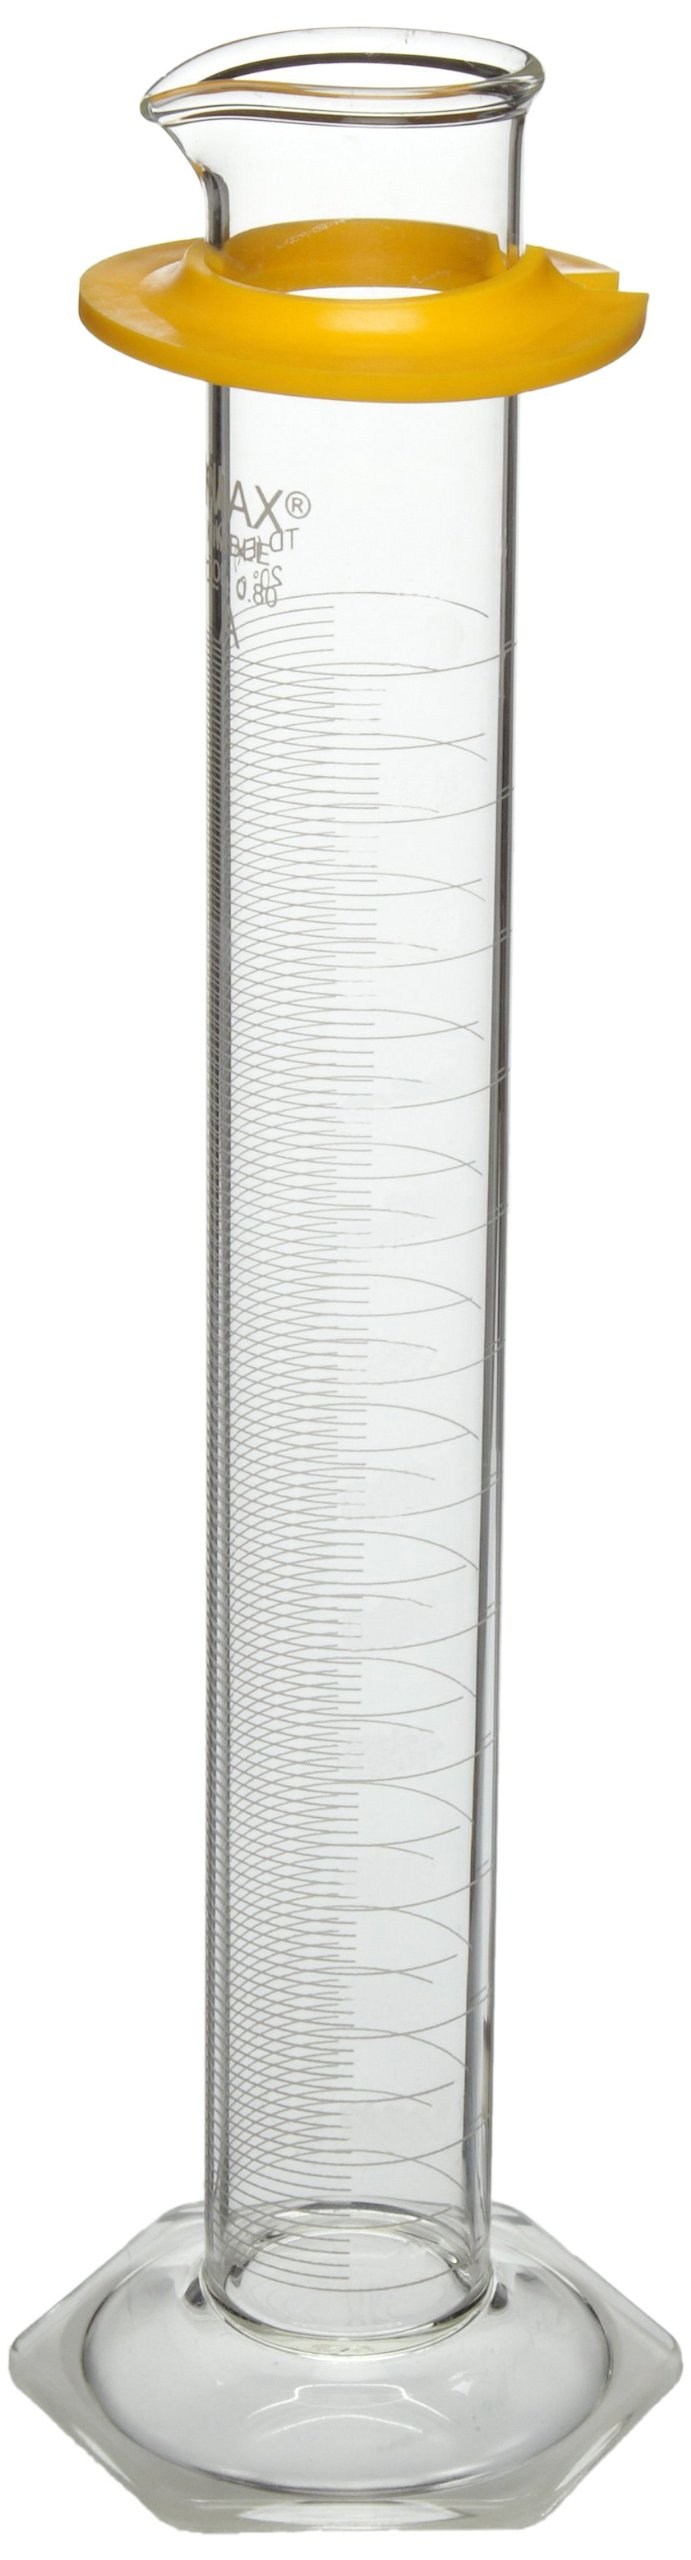 Kimble Chase KIMAX 20028W-1000 Borosilicate Glass Class A Cylinder with Reverse Metric Scale, Calibrated to Deliver, 1L Capacity